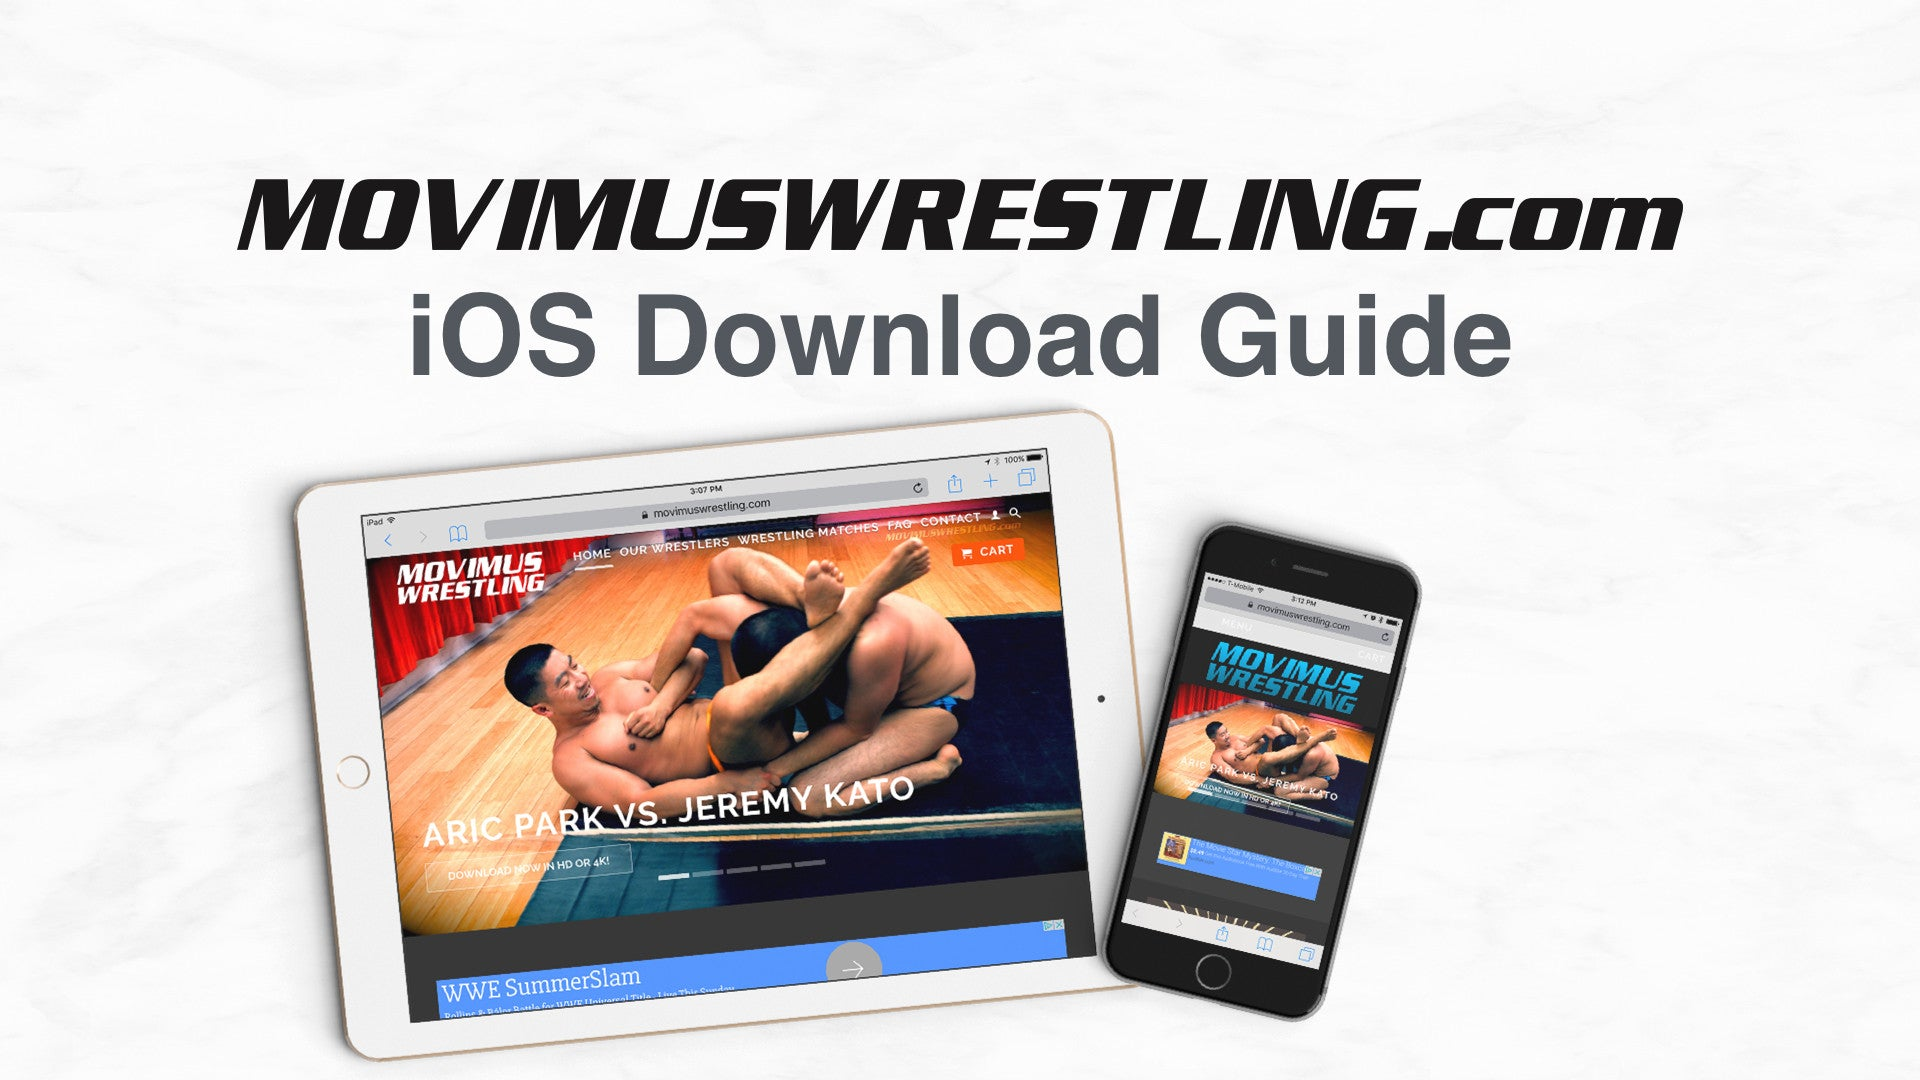 Update: How to download and watch Movimus Wrestling matches on your iOS devices